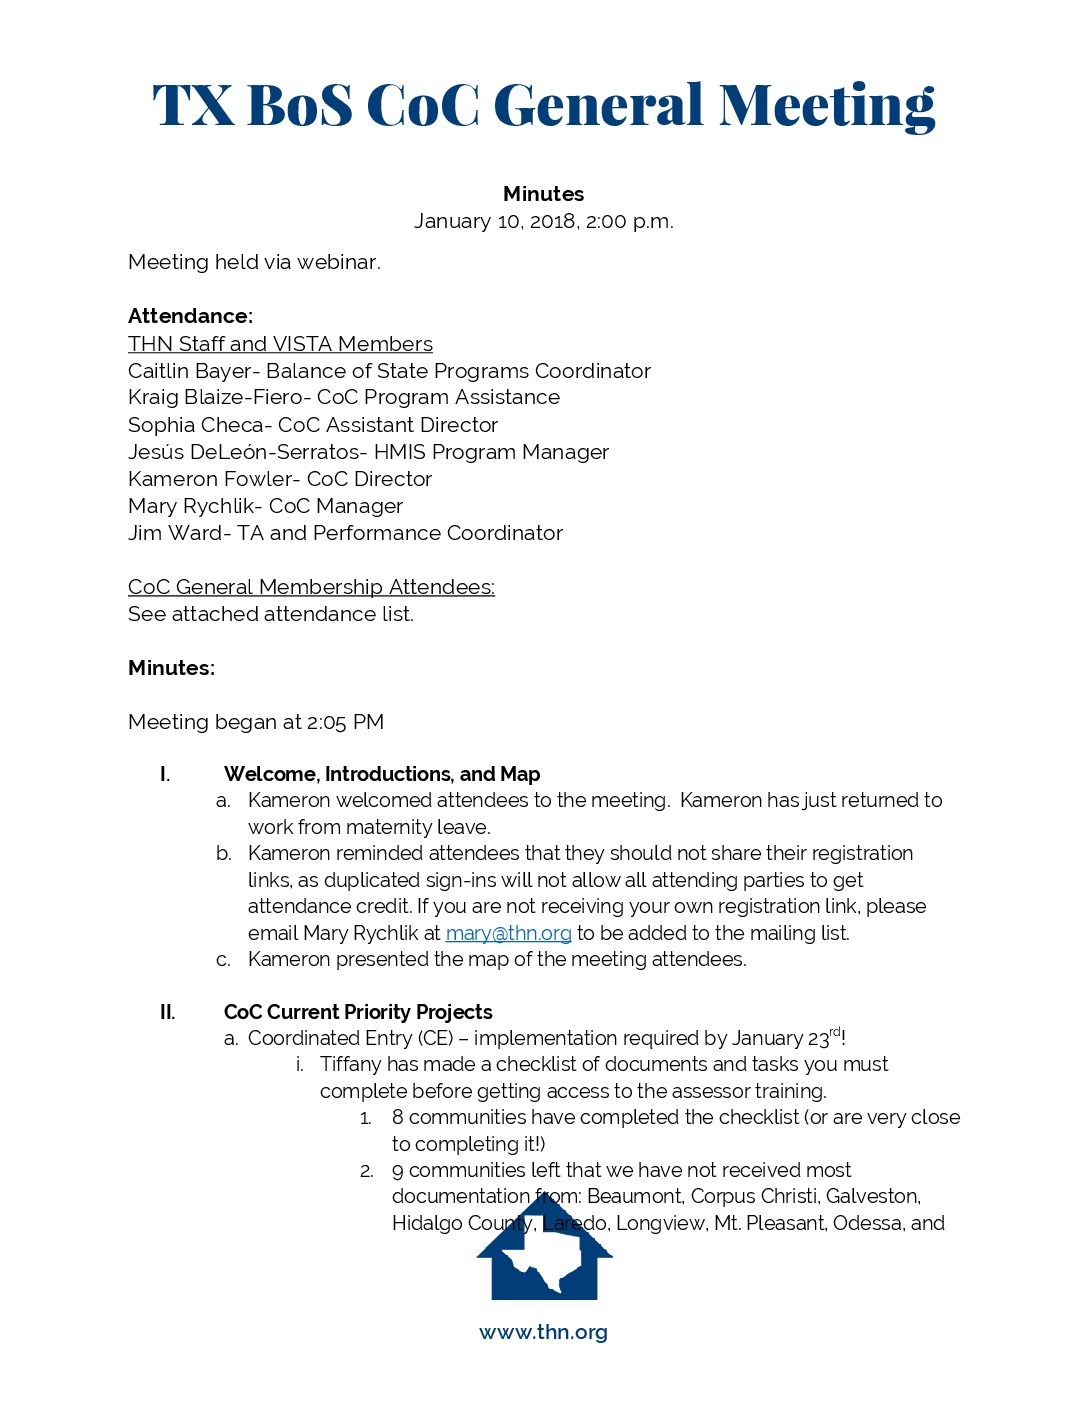 1-10-18 General Meeting Minutes and Materials   Texas